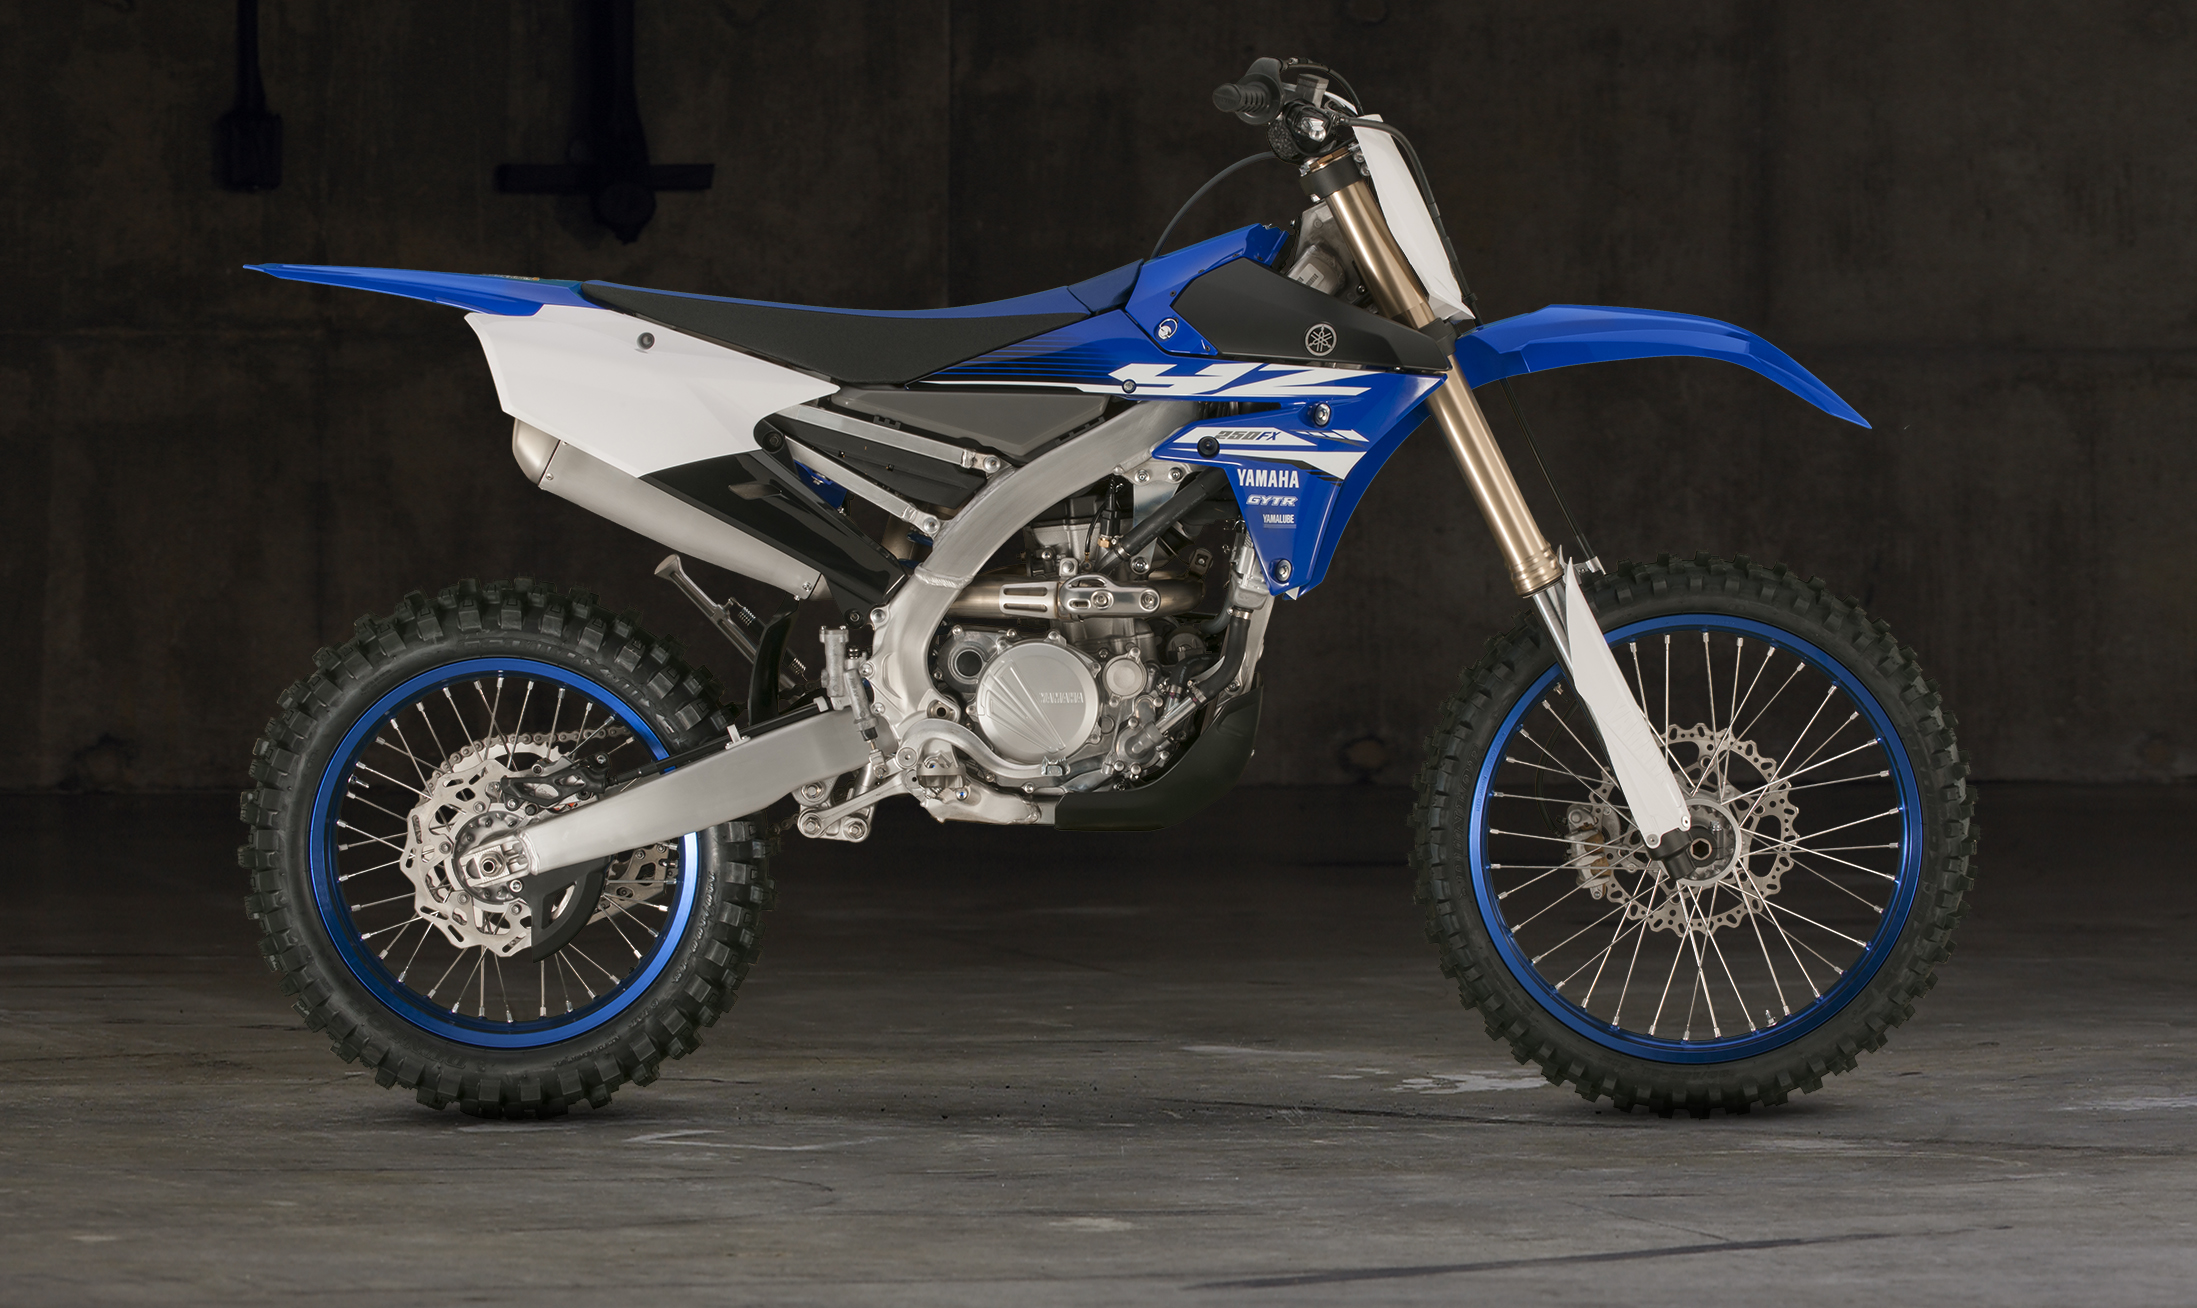 2018 Yamaha Yz250fx Cross Country Motorcycle Model Home